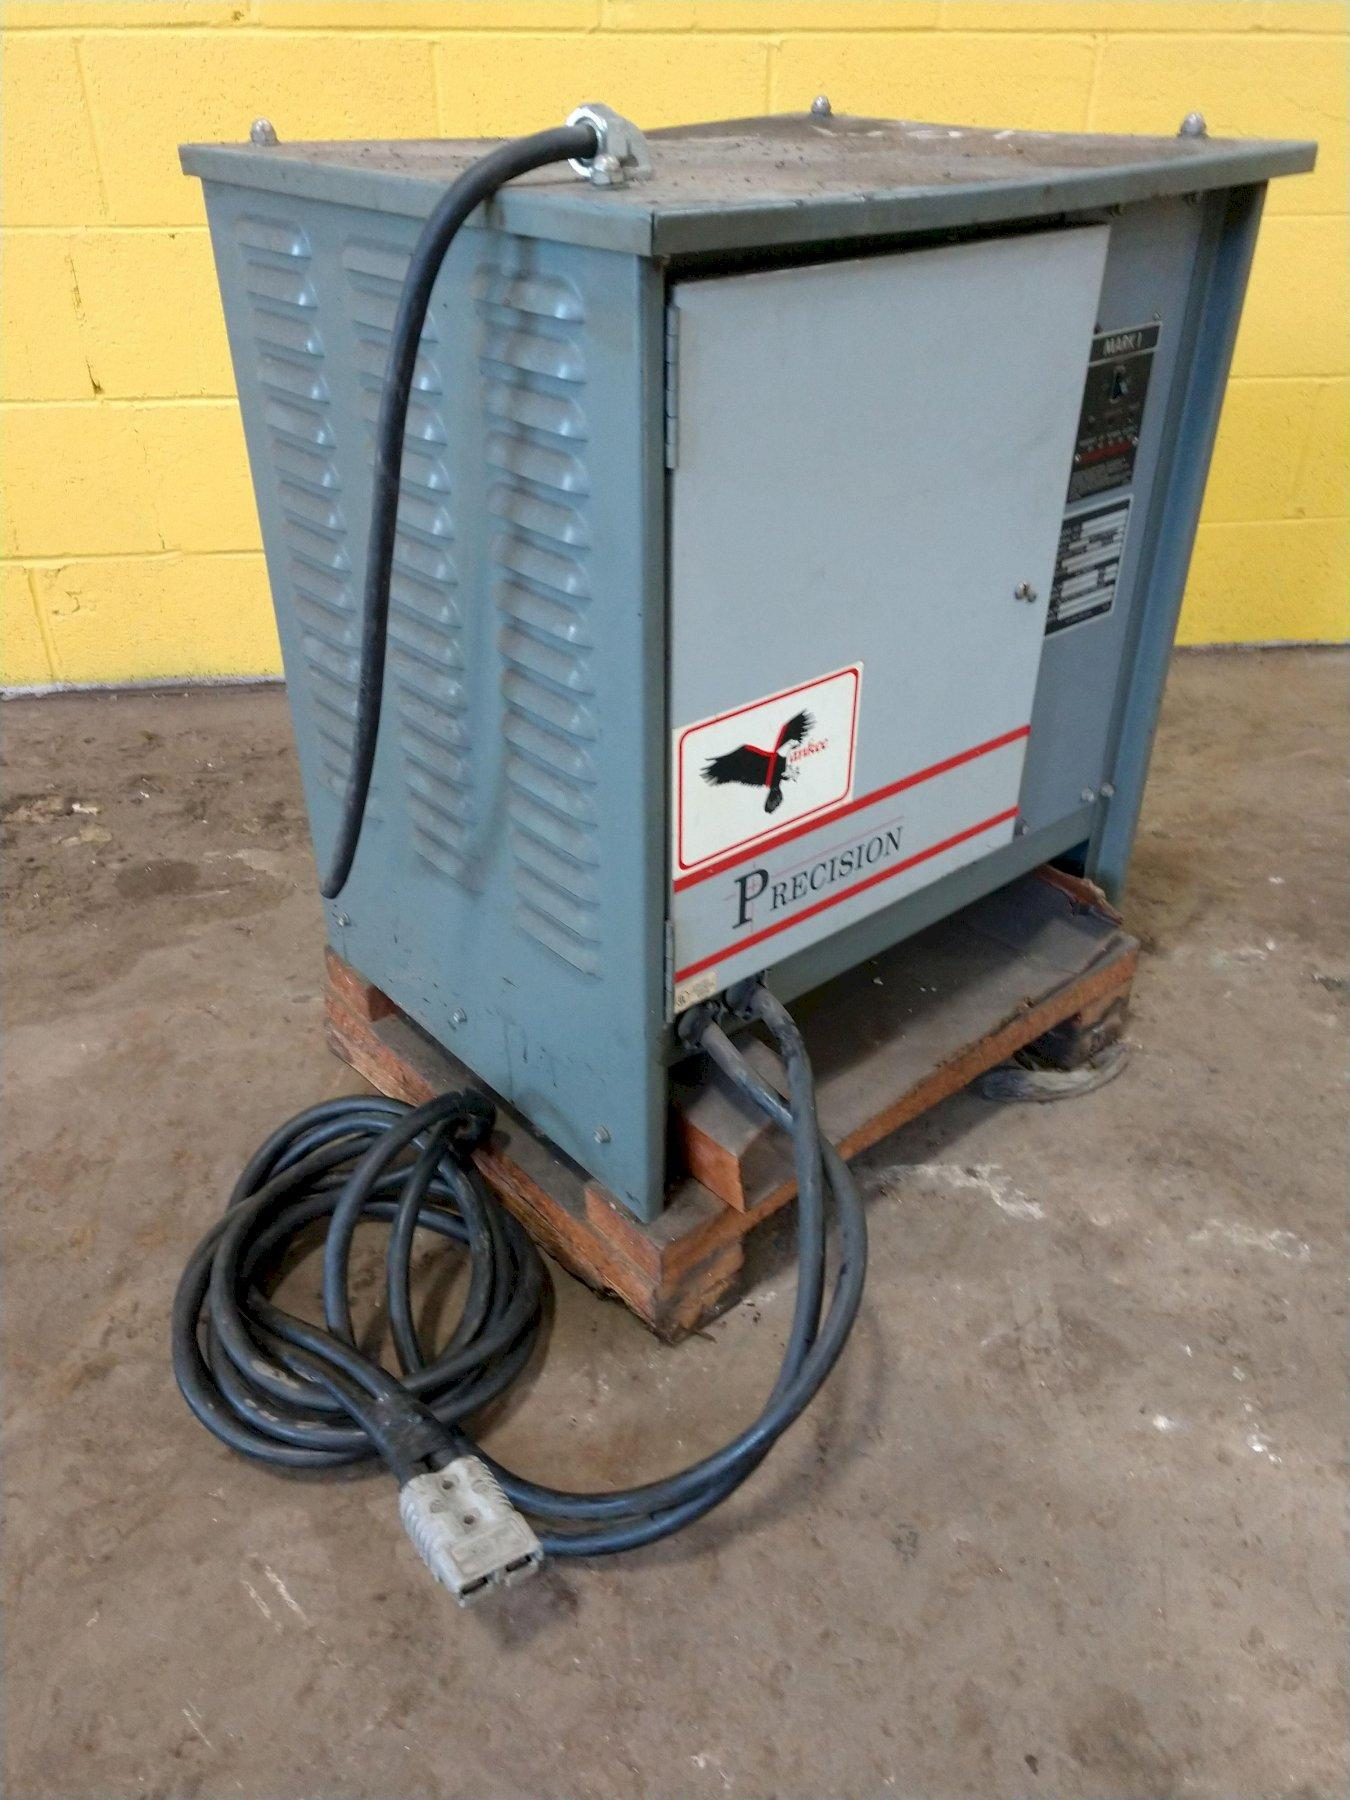 24 VOLT DC PRECISION ELECTRIC BATTERY CHARGER: STOCK 11926